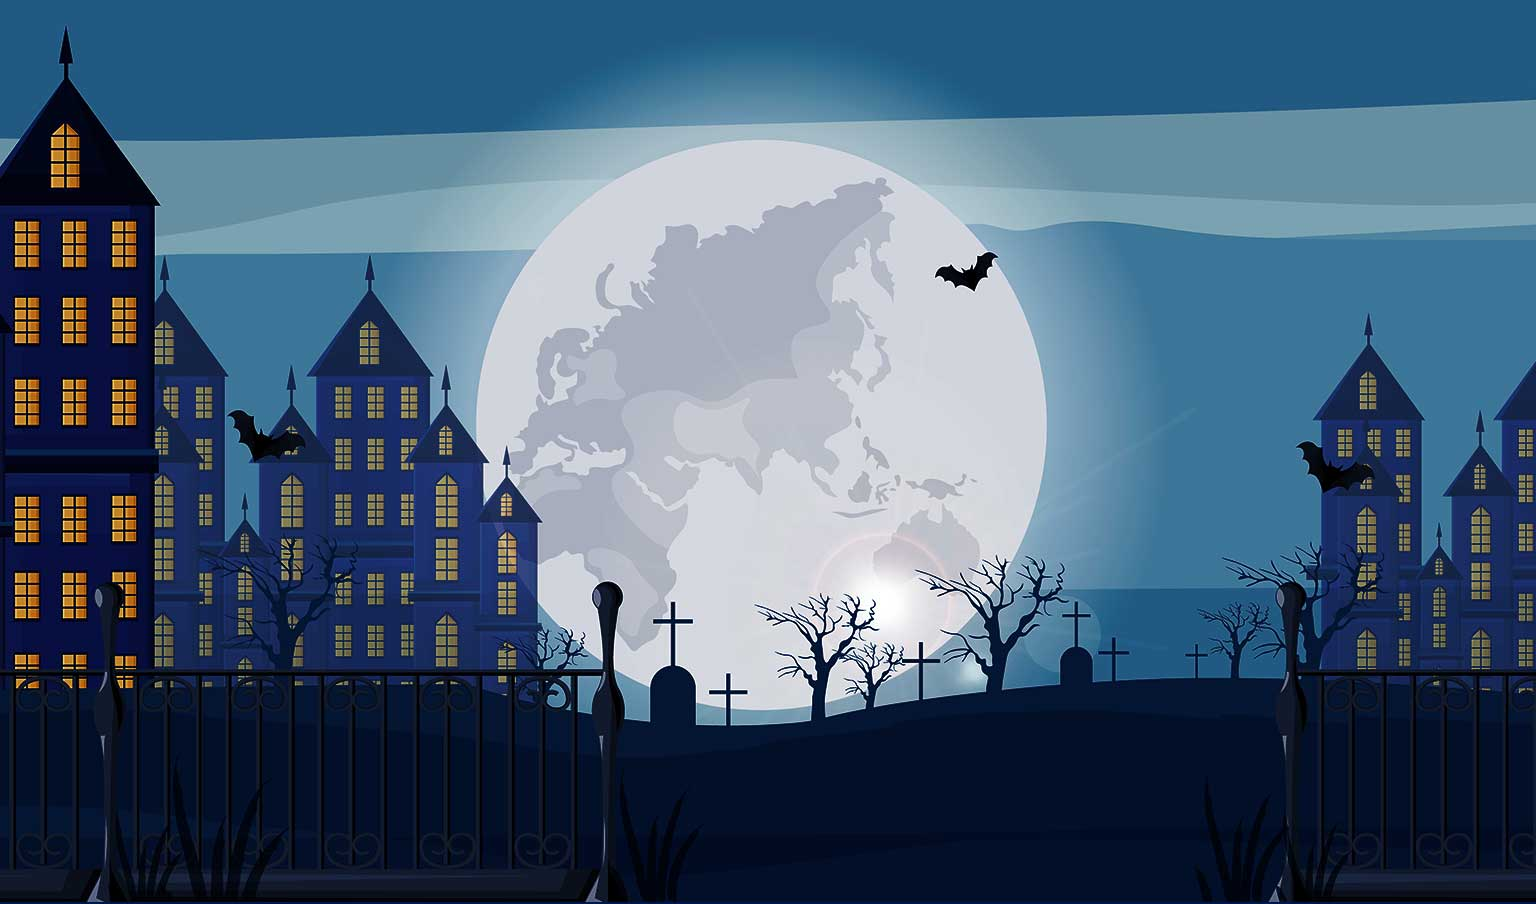 Creepy illustrated houses and graveyard against a night sky with a full moon representing the virtual haunted walking tours in Vancouver WA